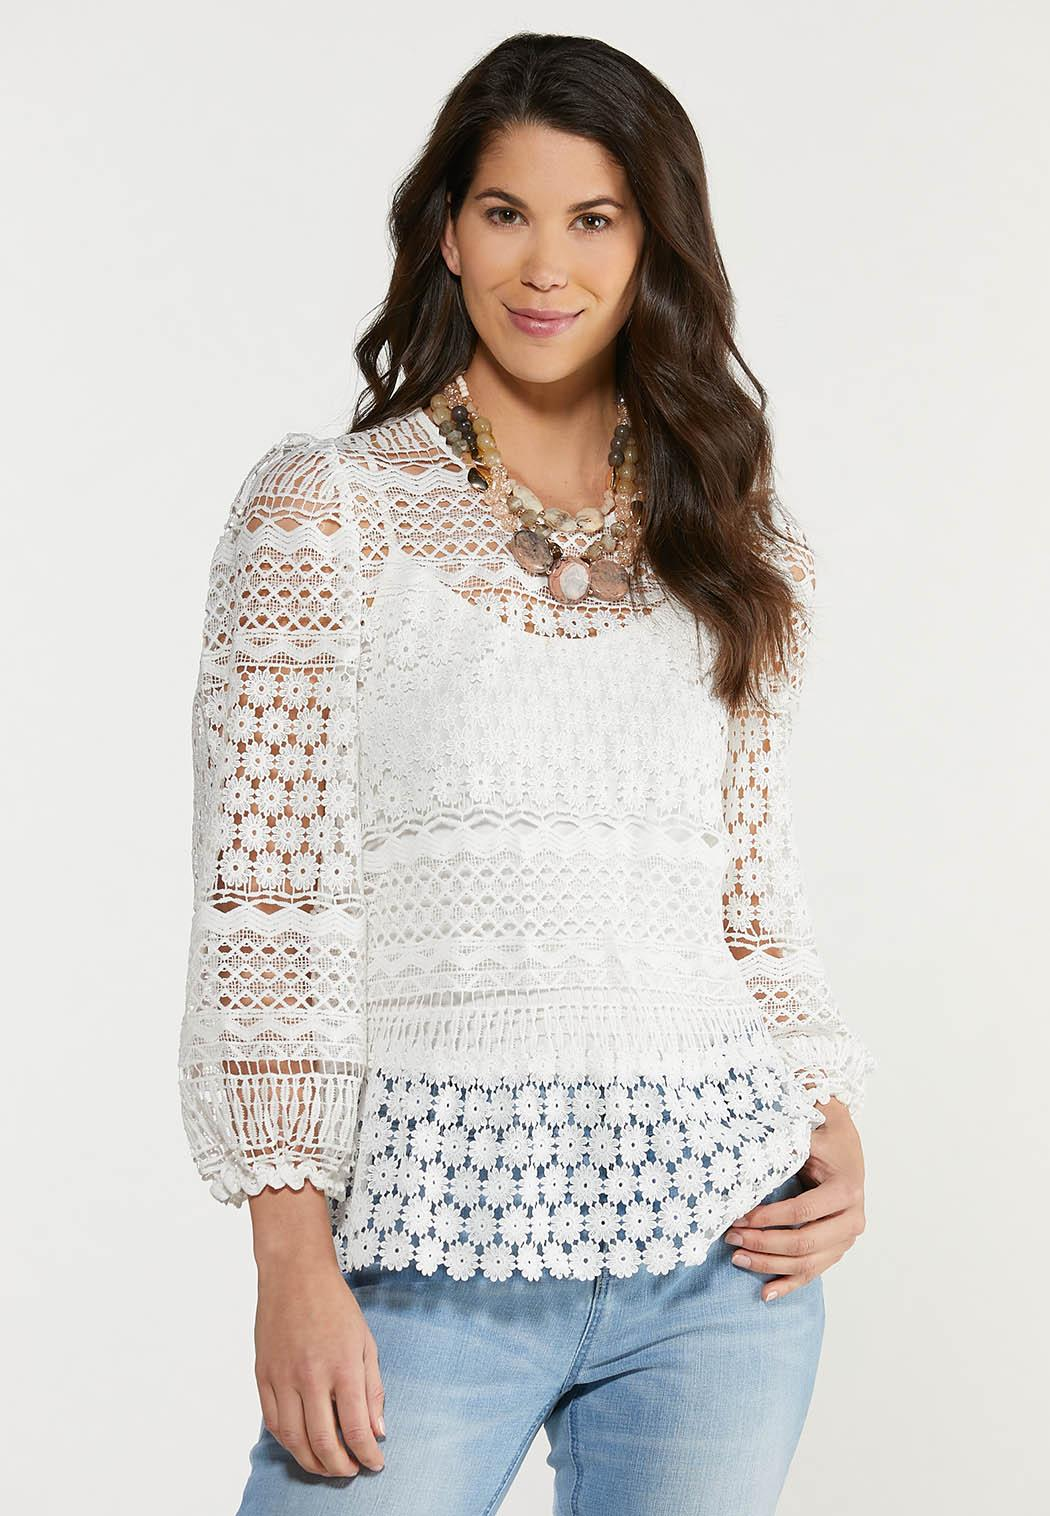 Plus Size White Crochet Top